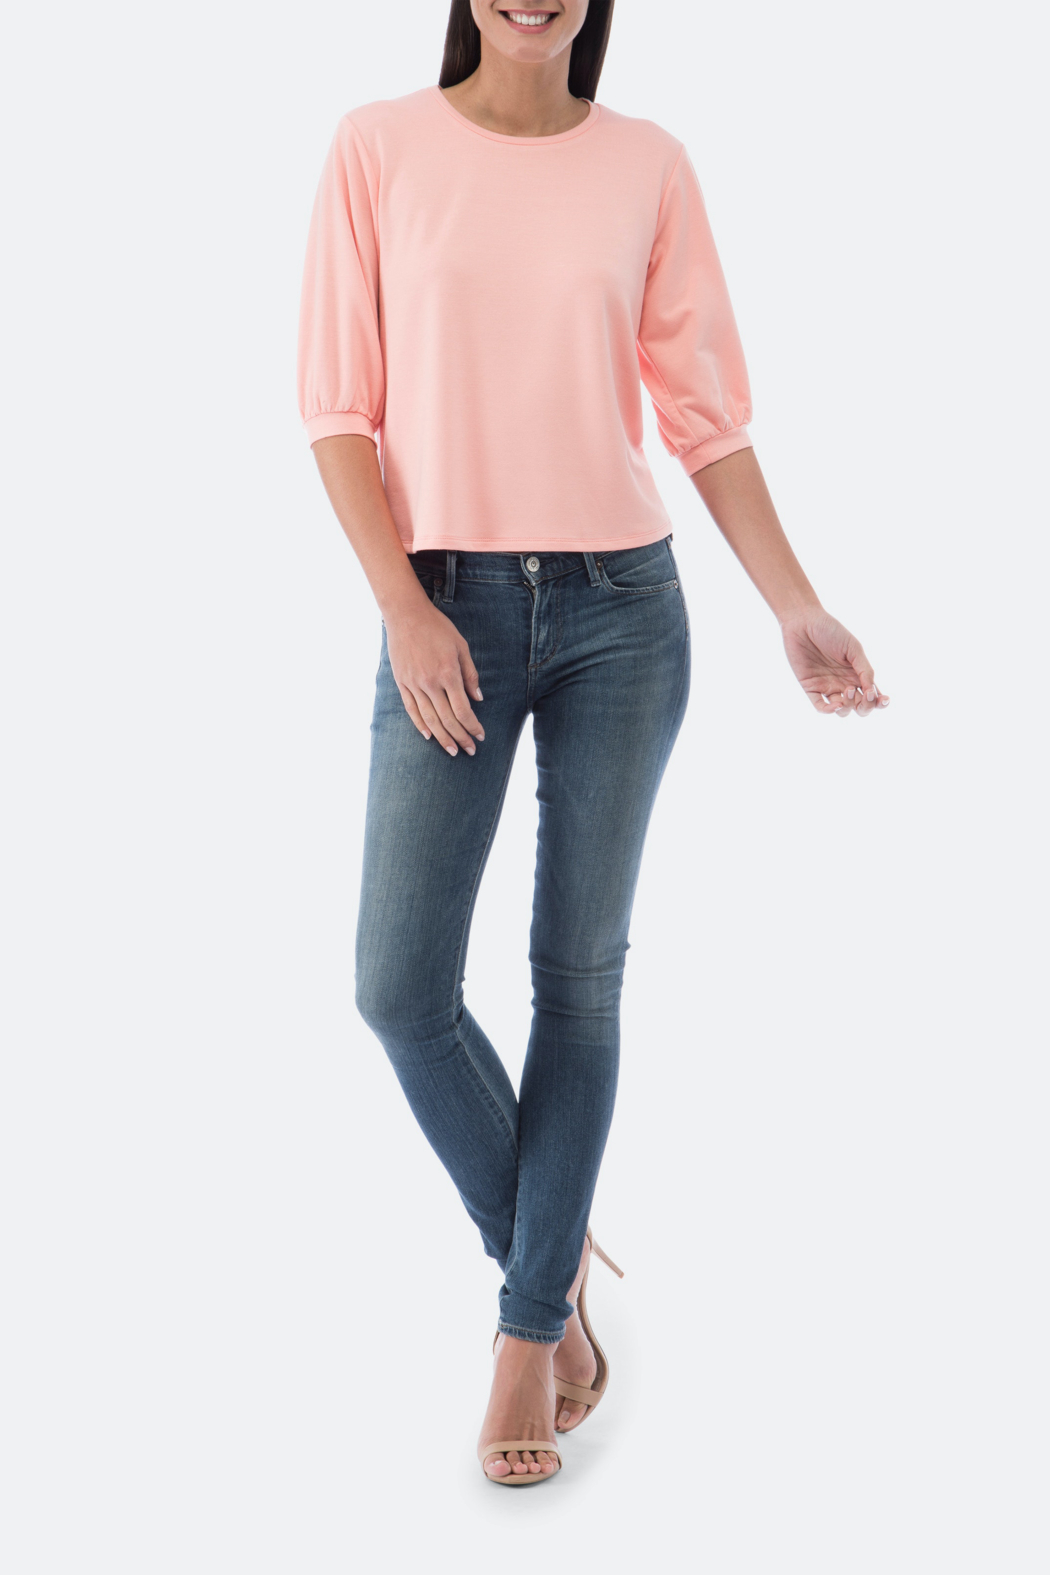 Bobeau Audre Puff Sleeve French Terry Top - Main Image